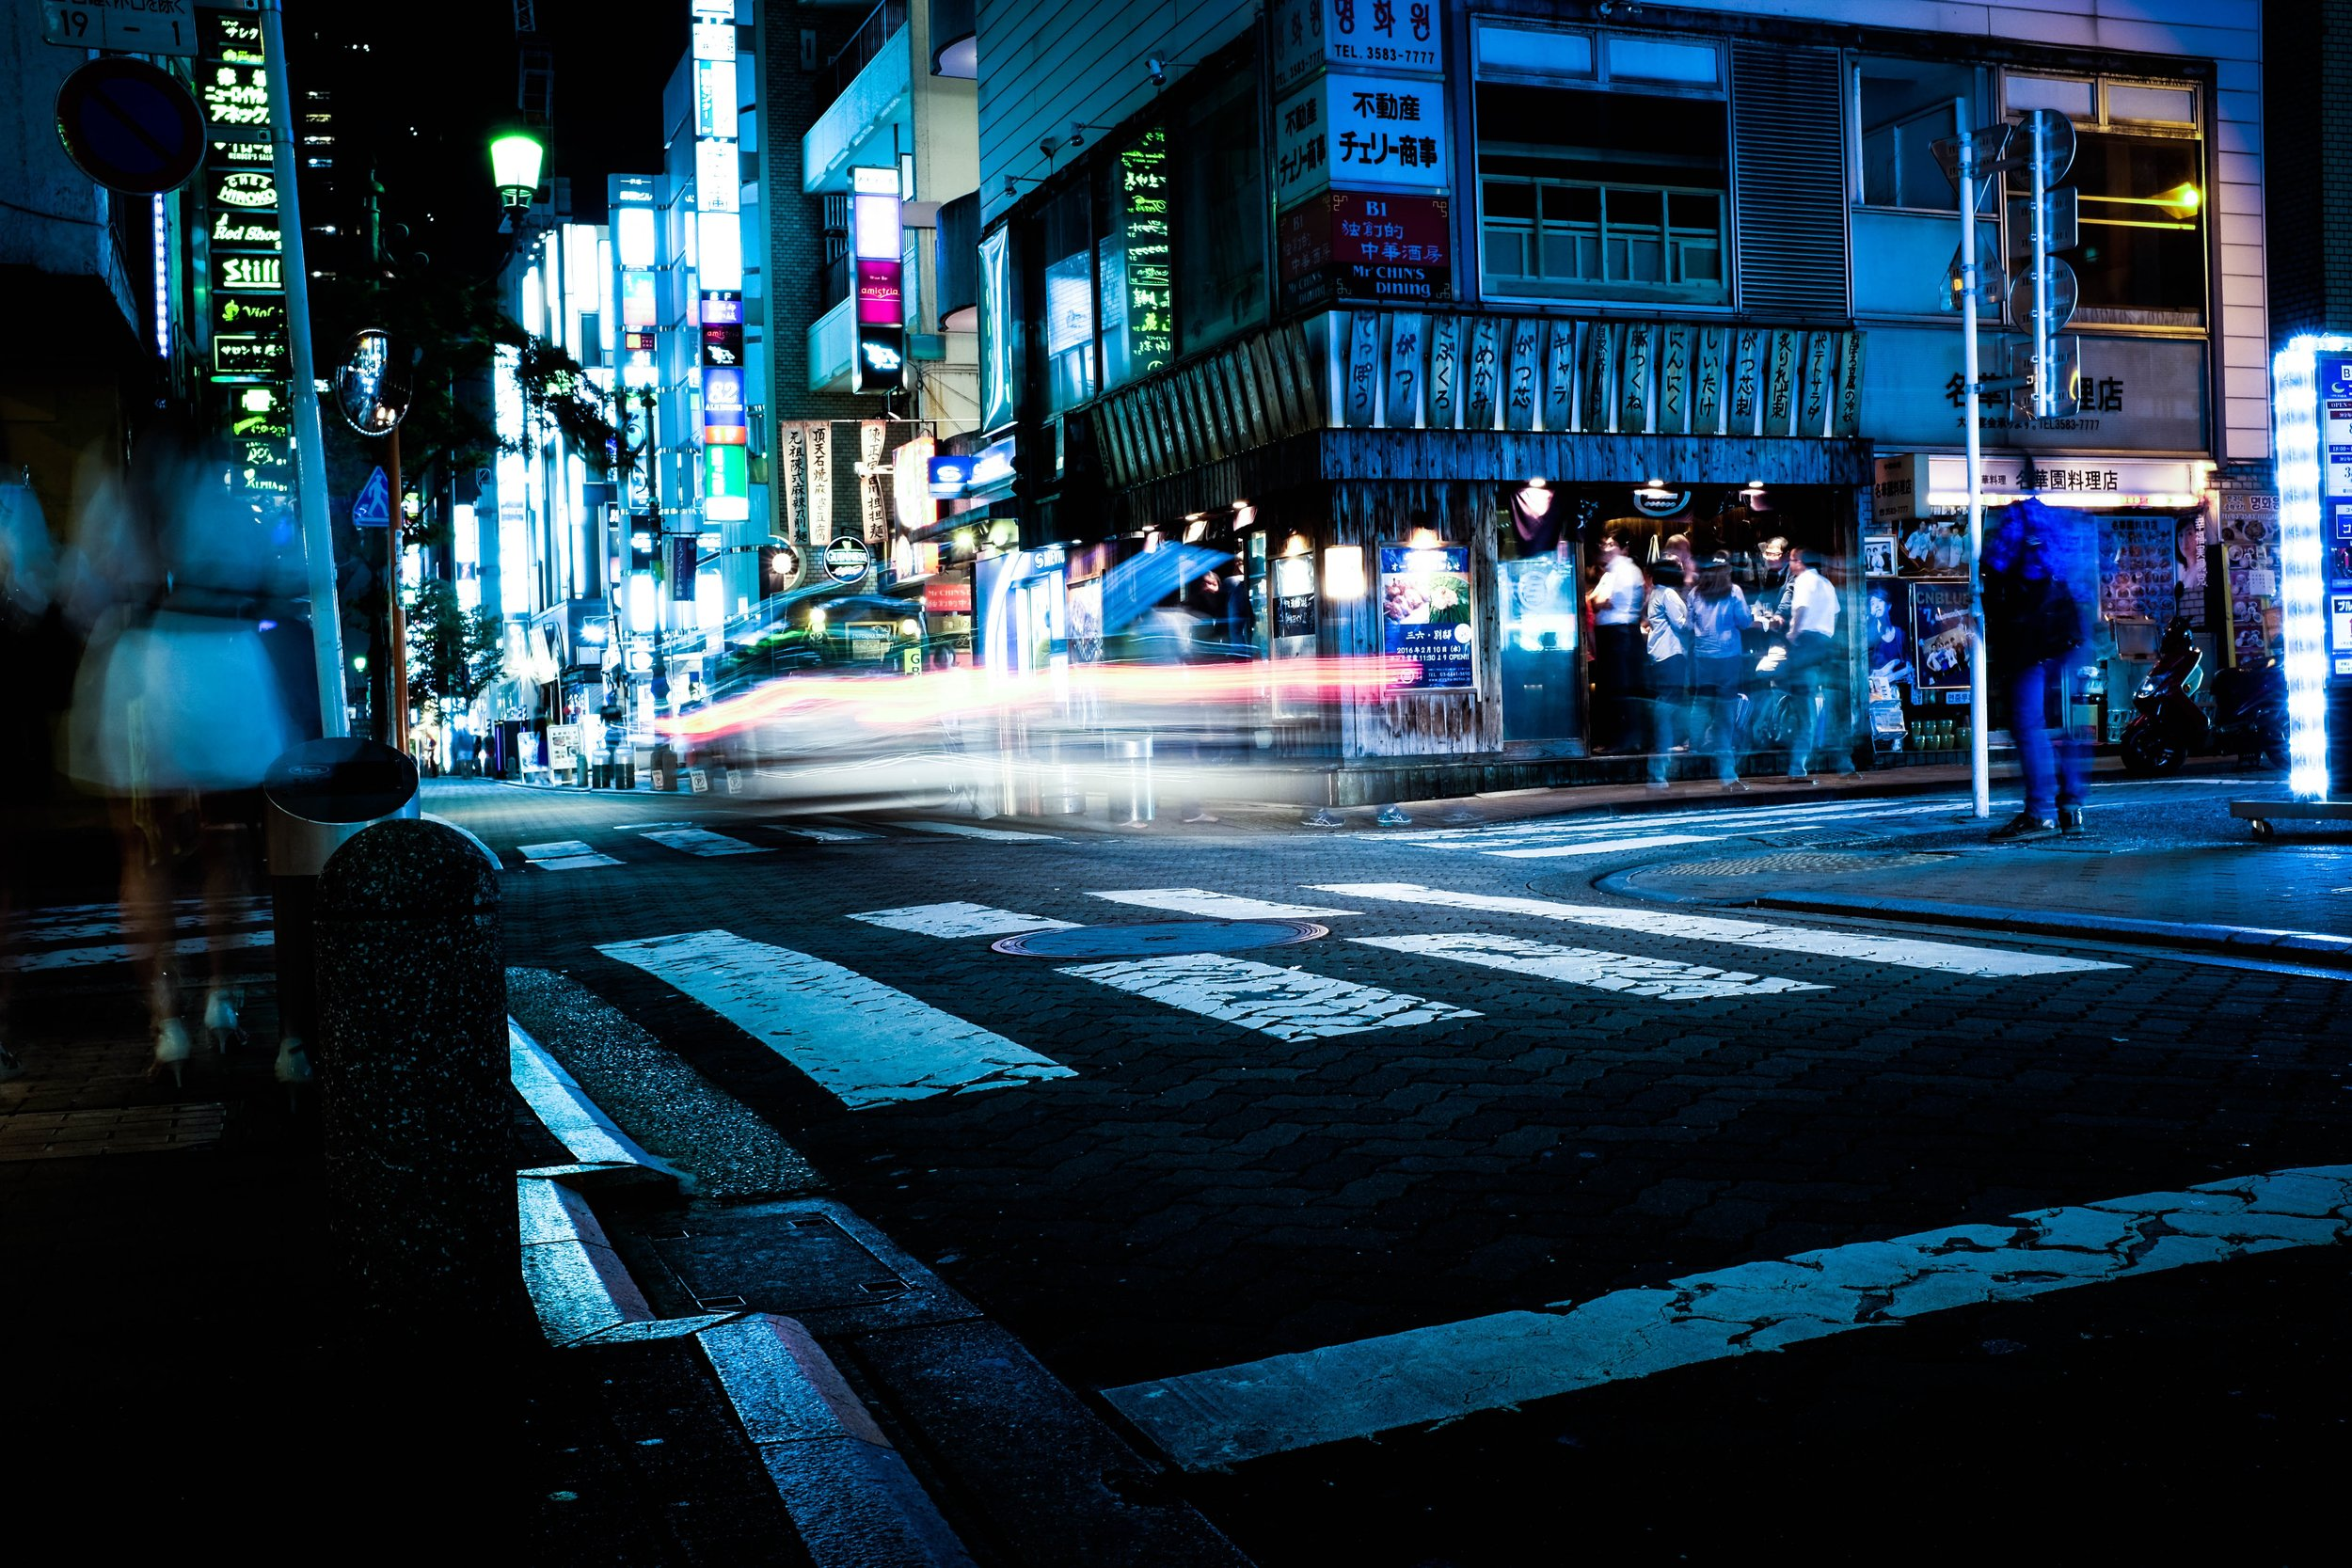 AFTER SUNSET, JAPANESE YOUTH GO TO IZAKAYAS. CREDIT: ALEX KNIGHT / SHUTTERSTOCK